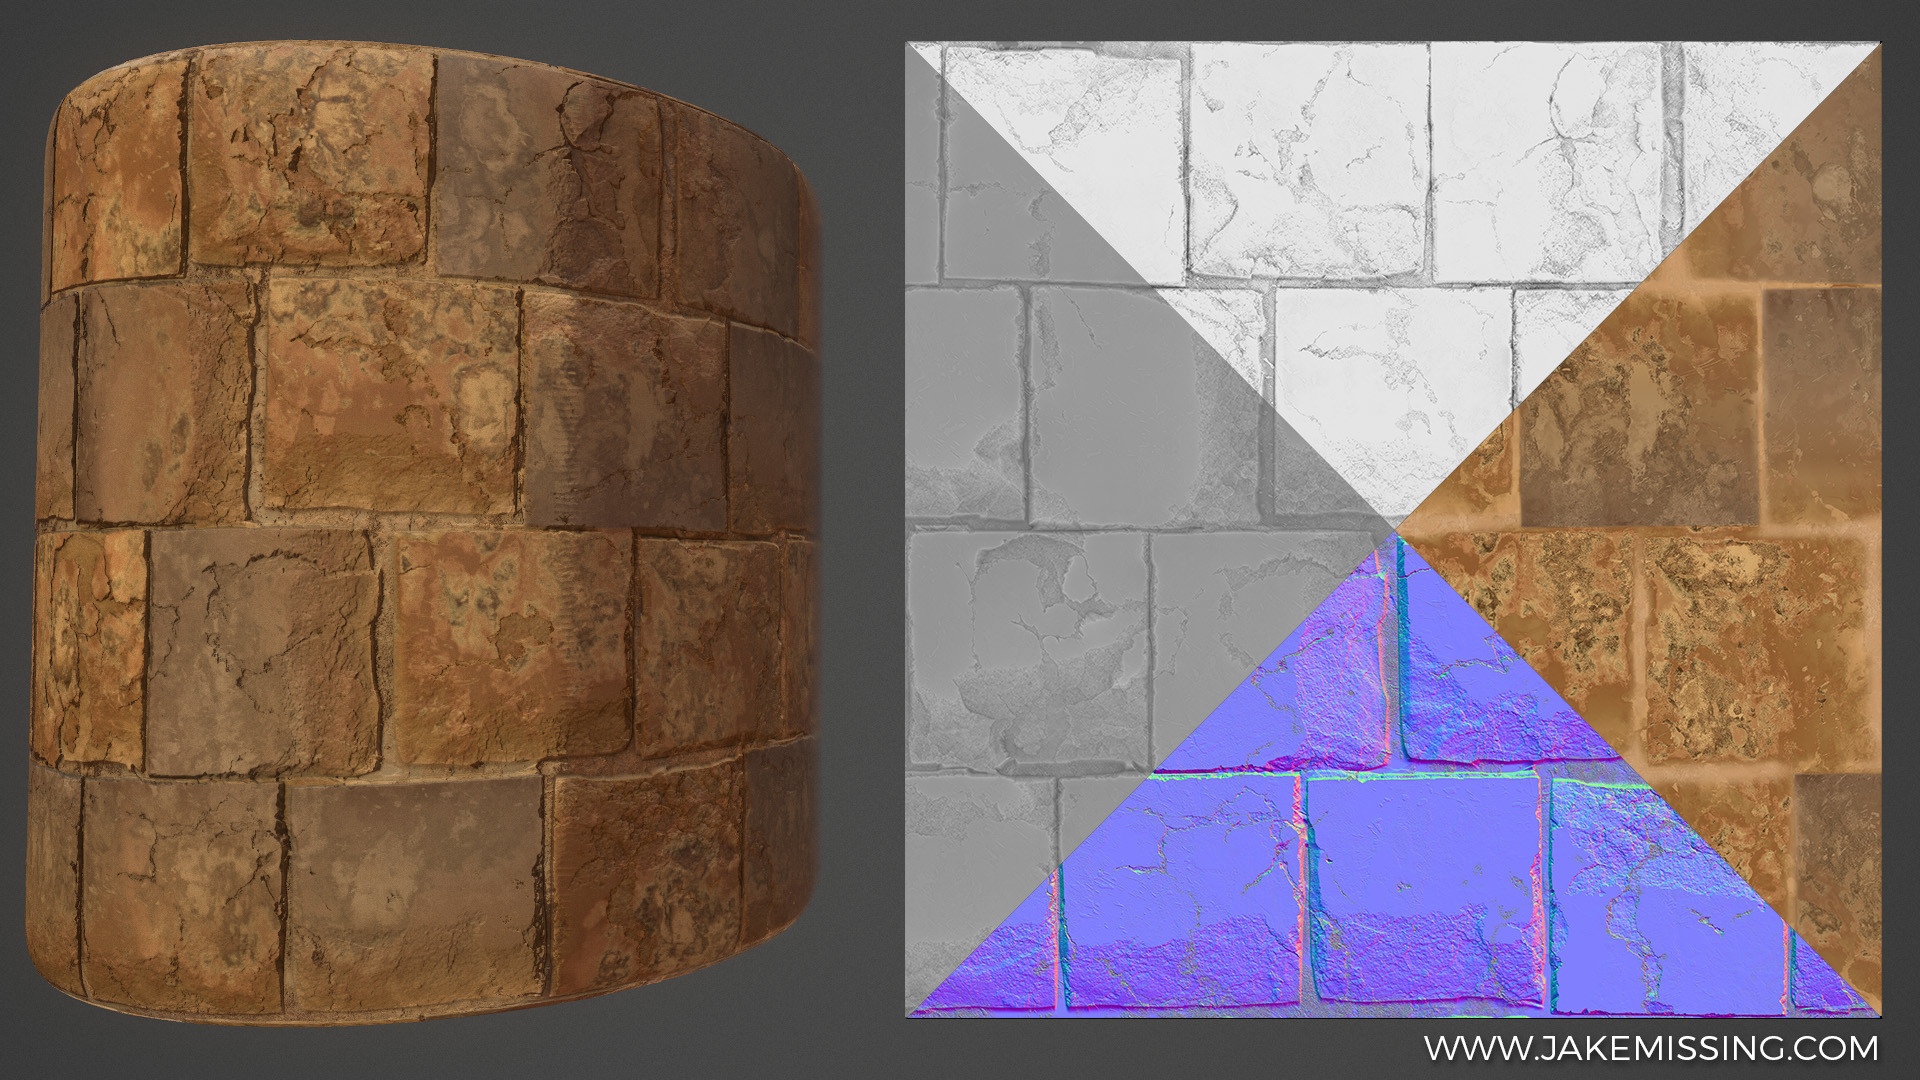 Used for the Prince of Persia environment floor.